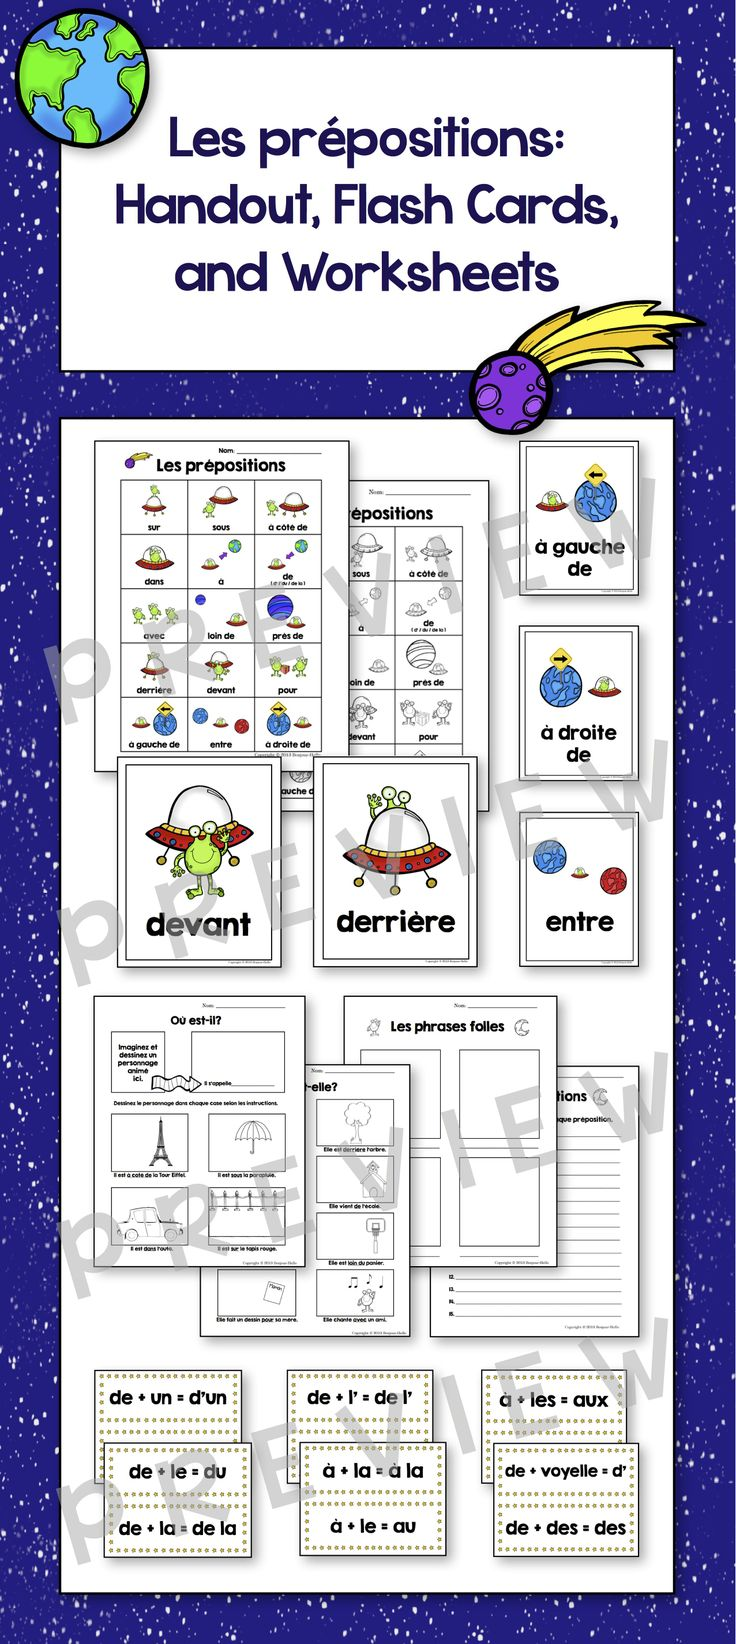 NEWLY UPDATED! Les prépositions - French Handout, Flash Cards, and Worksheets: NEWLY UPDATED with 3 new prepositions flash cards and an updated handout too. Check it out!